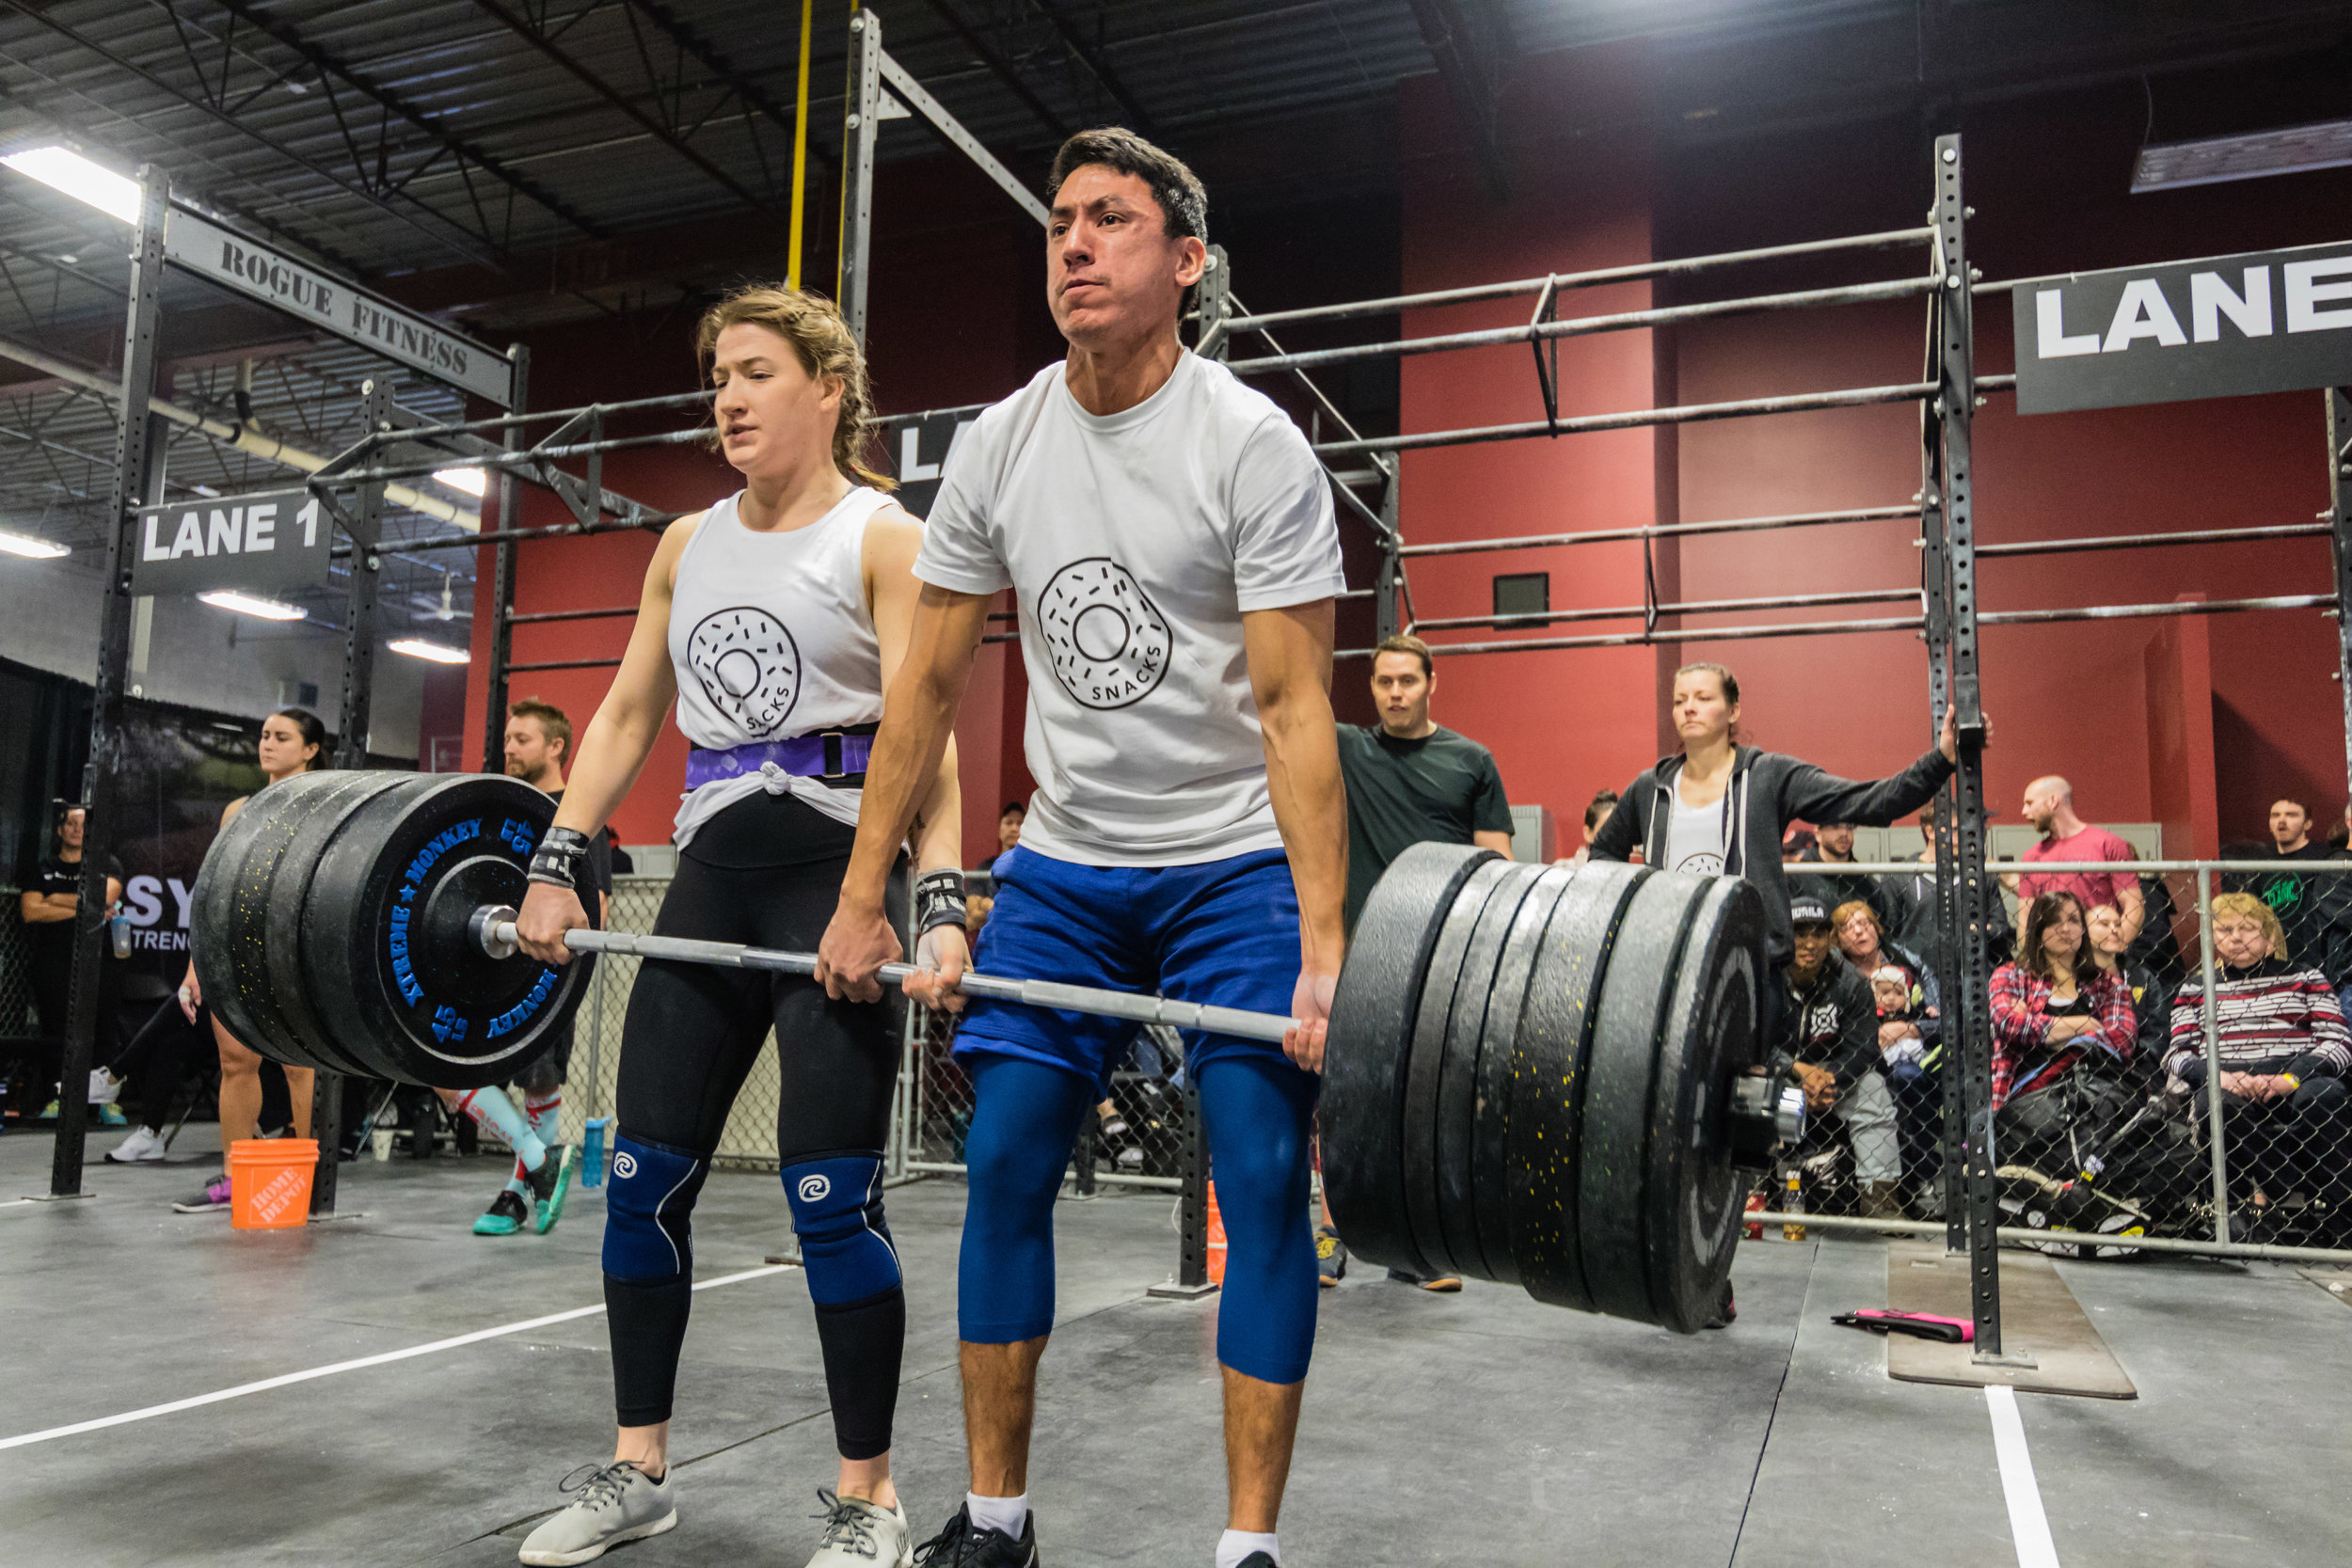 Half of team 'Do It For The Snacks' deadlifting 480 lbs together ... for the snacks.